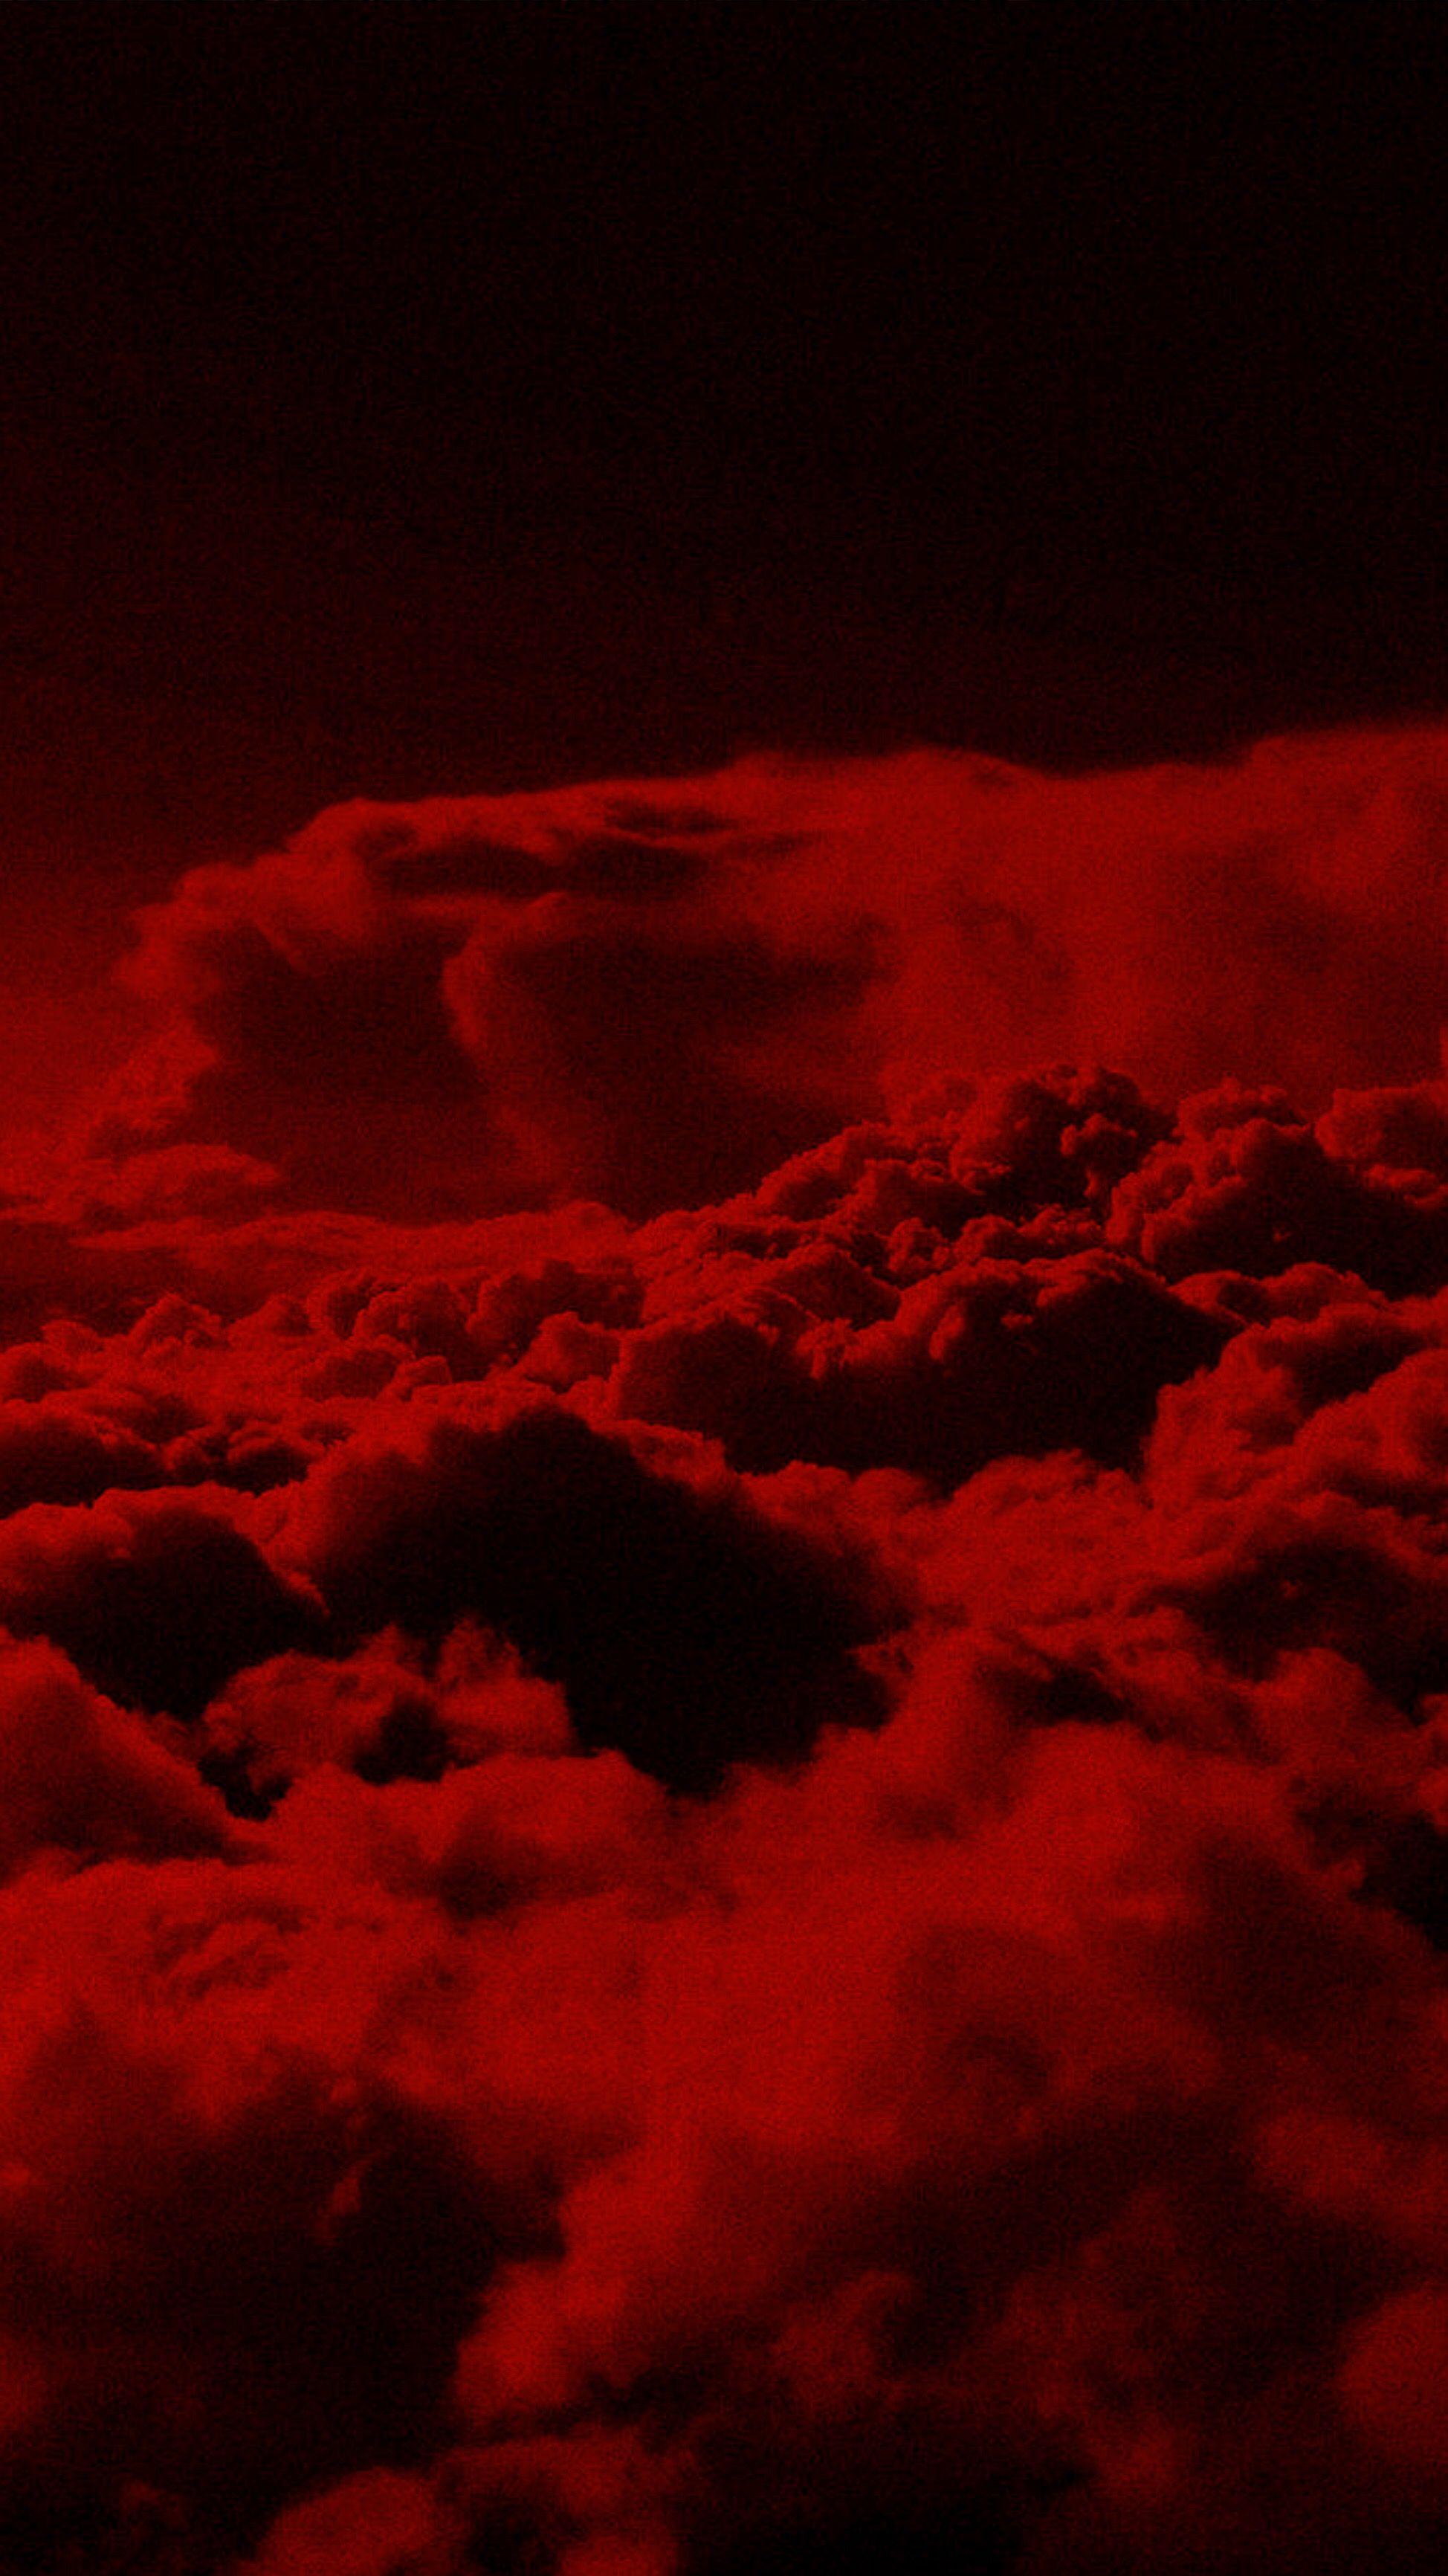 Red Sky In 2020 Dark Red Wallpaper Red And Black Wallpaper Red Aesthetic Grunge